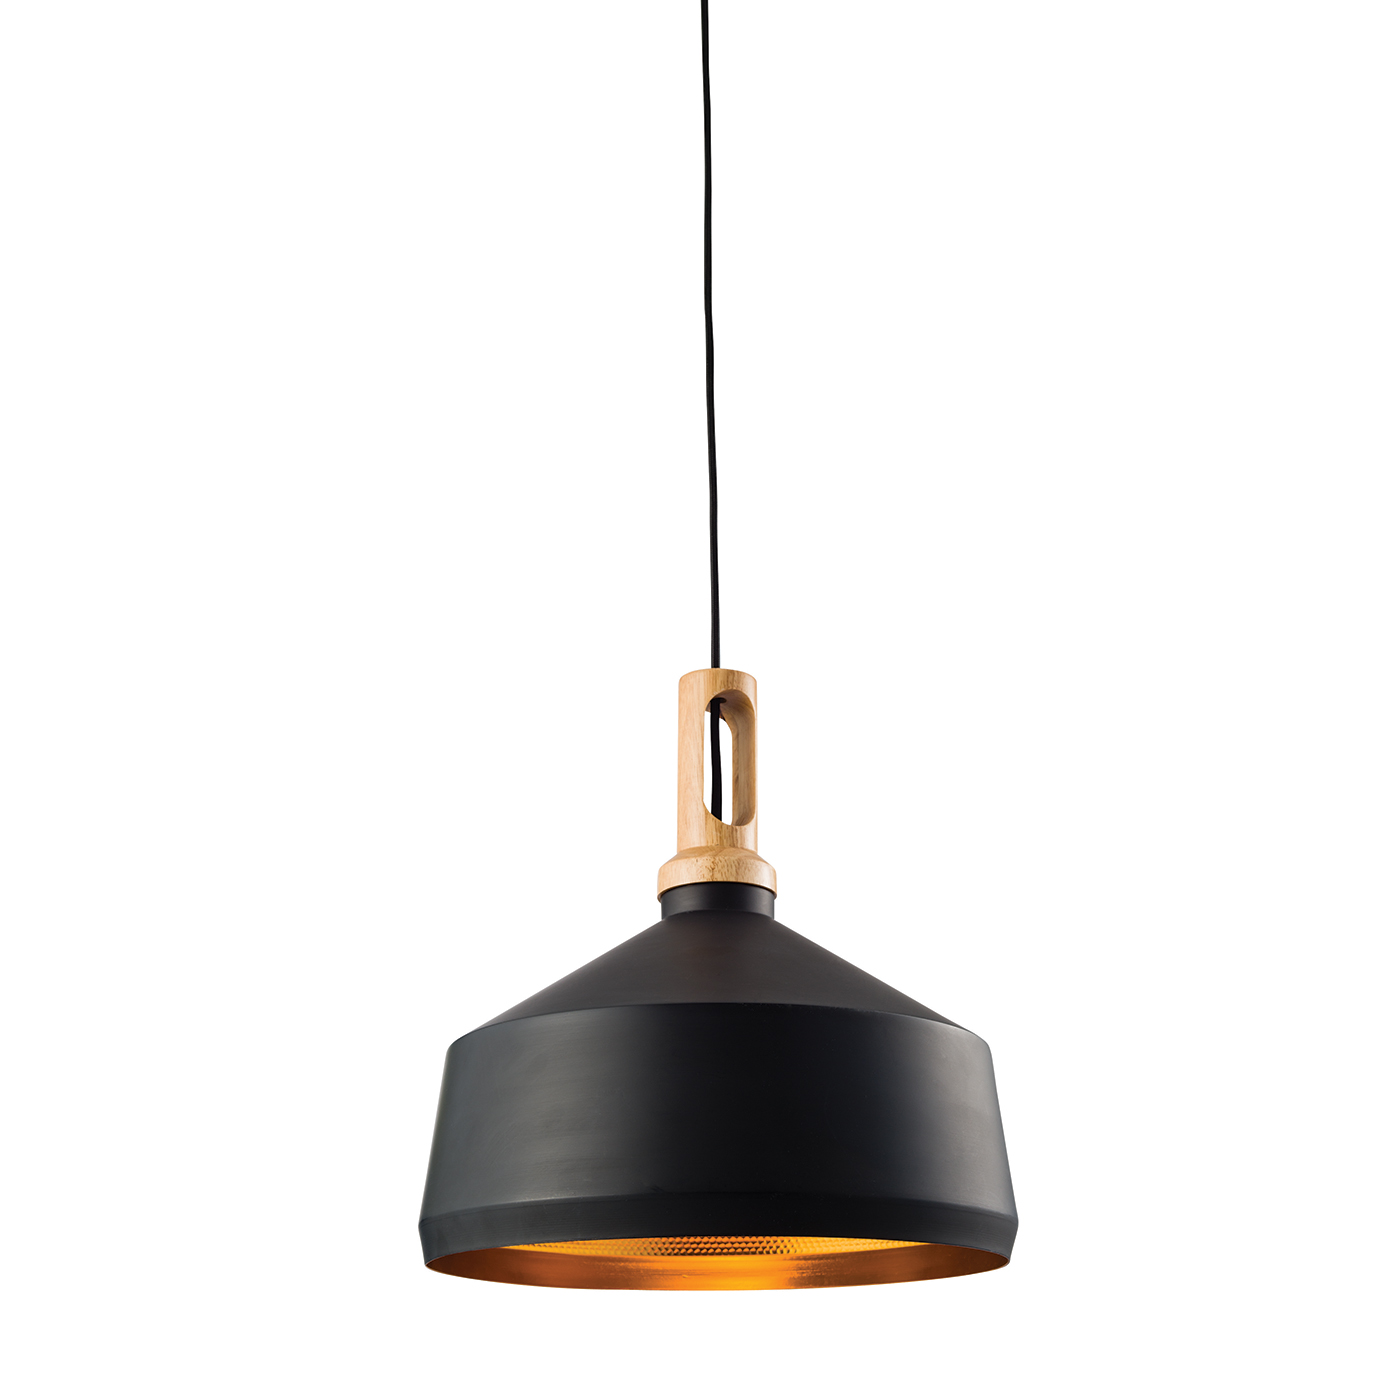 Endon Garcia pendant 1x 60W Matt black & light effect wood